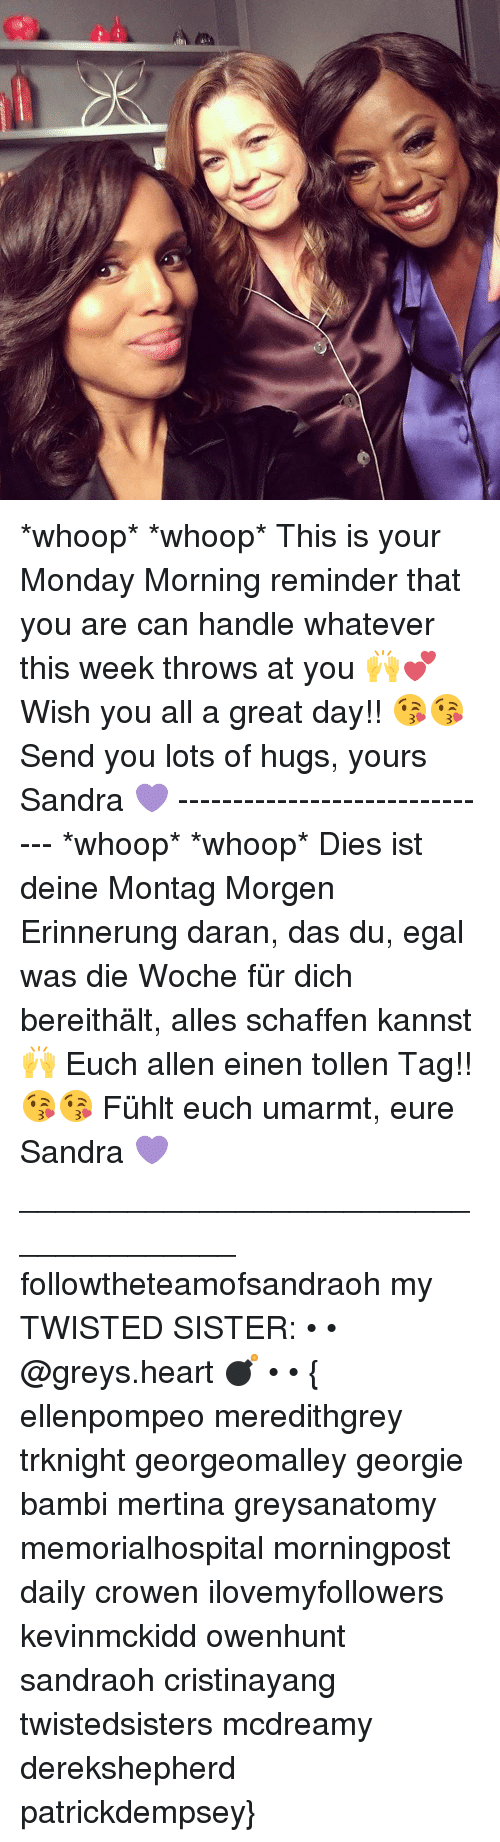 Bambi, Memes, and Grey: *whoop* *whoop* This is your Monday Morning reminder that you are can handle whatever this week throws at you 🙌💕 Wish you all a great day!! 😘😘 Send you lots of hugs, yours Sandra 💜 ------------------------------ *whoop* *whoop* Dies ist deine Montag Morgen Erinnerung daran, das du, egal was die Woche für dich bereithält, alles schaffen kannst 🙌 Euch allen einen tollen Tag!! 😘😘 Fühlt euch umarmt, eure Sandra 💜 _____________________________________ followtheteamofsandraoh my TWISTED SISTER: • • @greys.heart 💣 • • { ellenpompeo meredithgrey trknight georgeomalley georgie bambi mertina greysanatomy memorialhospital morningpost daily crowen ilovemyfollowers kevinmckidd owenhunt sandraoh cristinayang twistedsisters mcdreamy derekshepherd patrickdempsey}